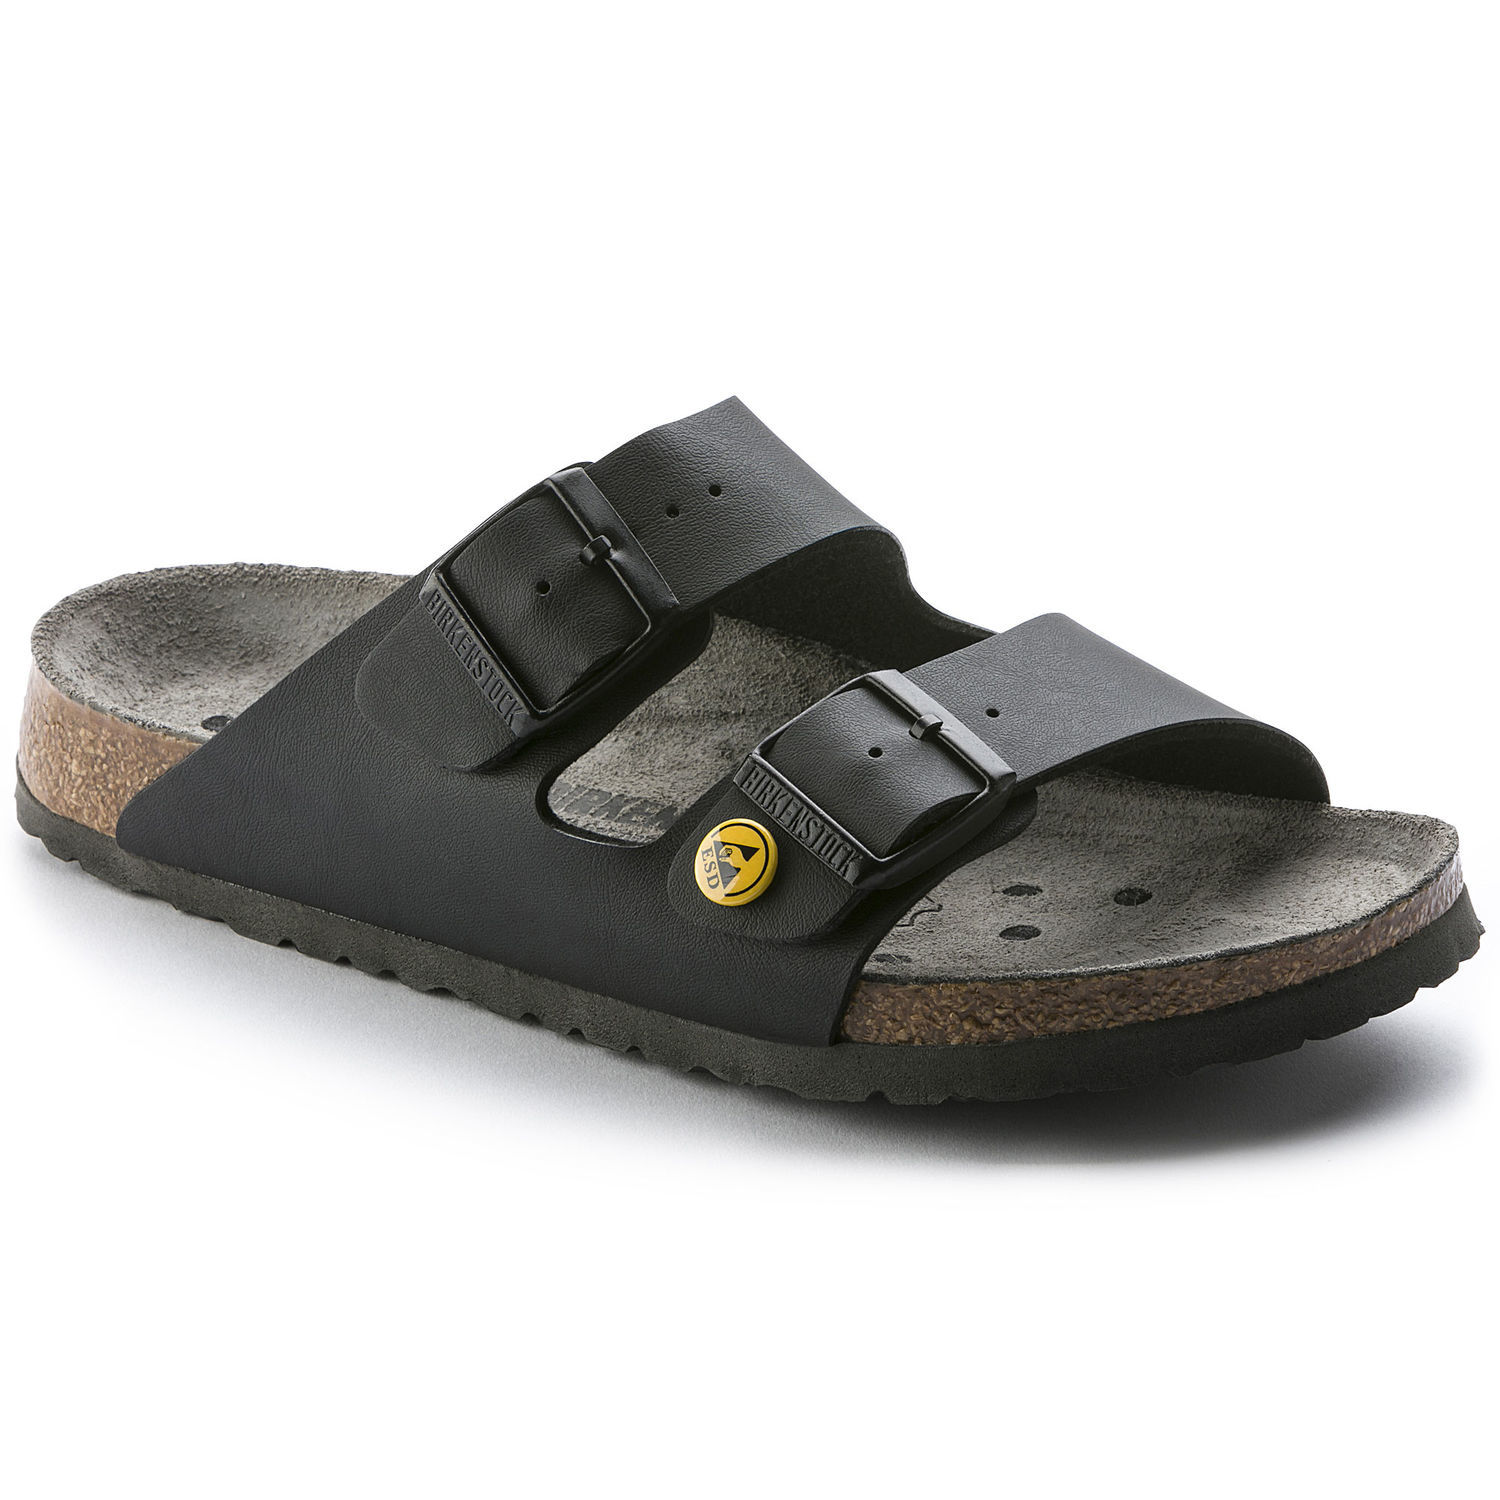 Image of   Sort Arizona ESD sandal fra Birkenstock - 36